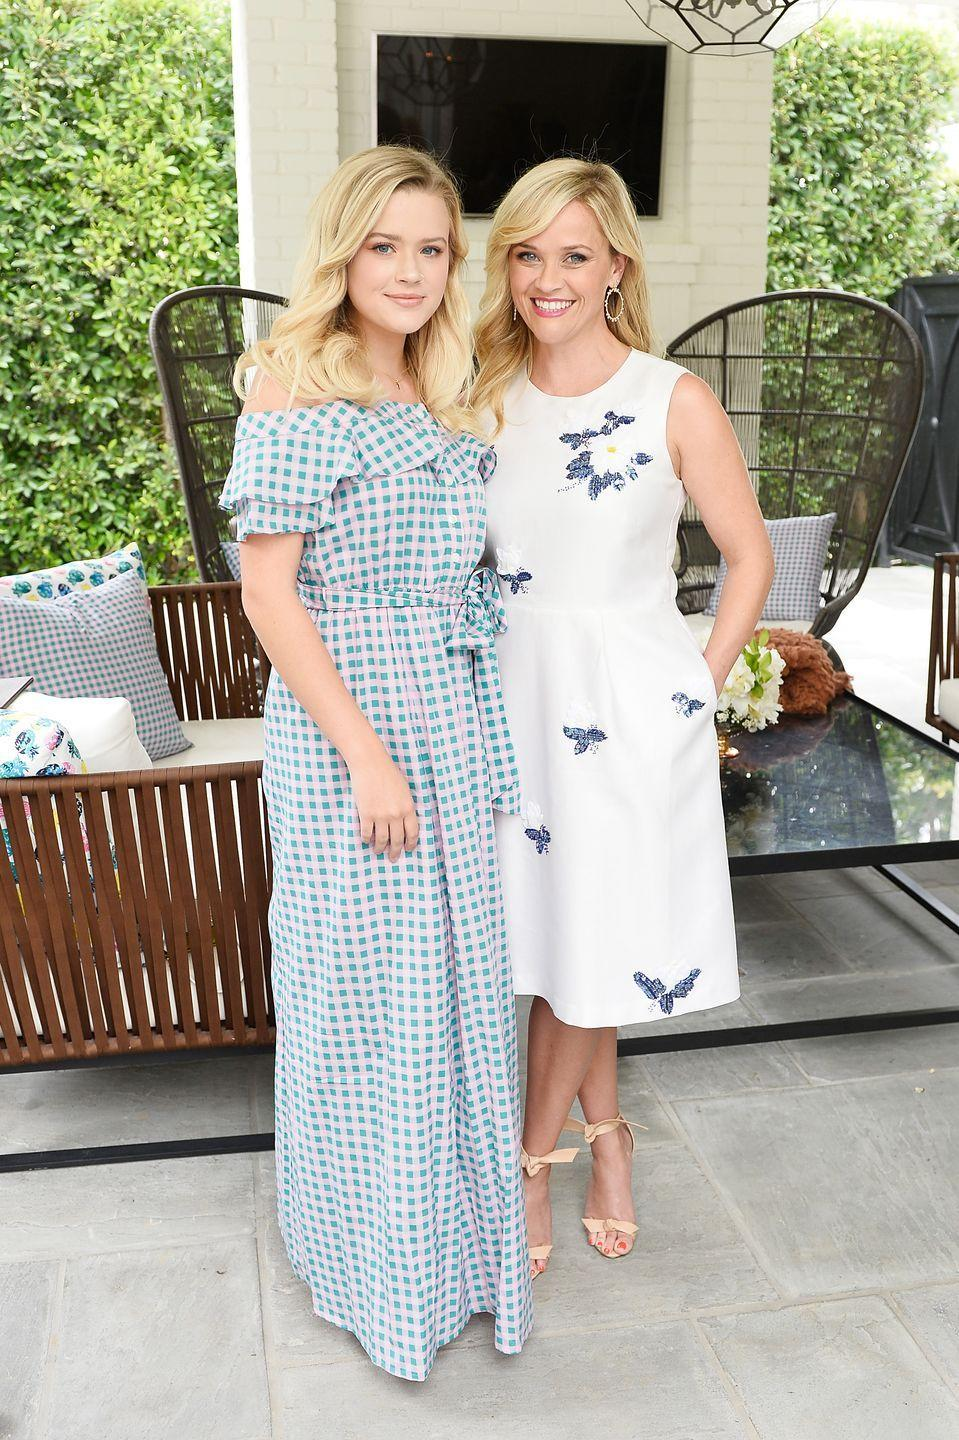 "<p>""<a href=""http://blog.draperjames.com/2018/02/reese-witherspoon-ava-phillippe-interview/"" rel=""nofollow noopener"" target=""_blank"" data-ylk=""slk:There is nothing"" class=""link rapid-noclick-resp"">There is nothing</a> like the love I have for my daughter. We share every emotion with each other, our hopes, and dreams … We can talk for hours!!""</p>"